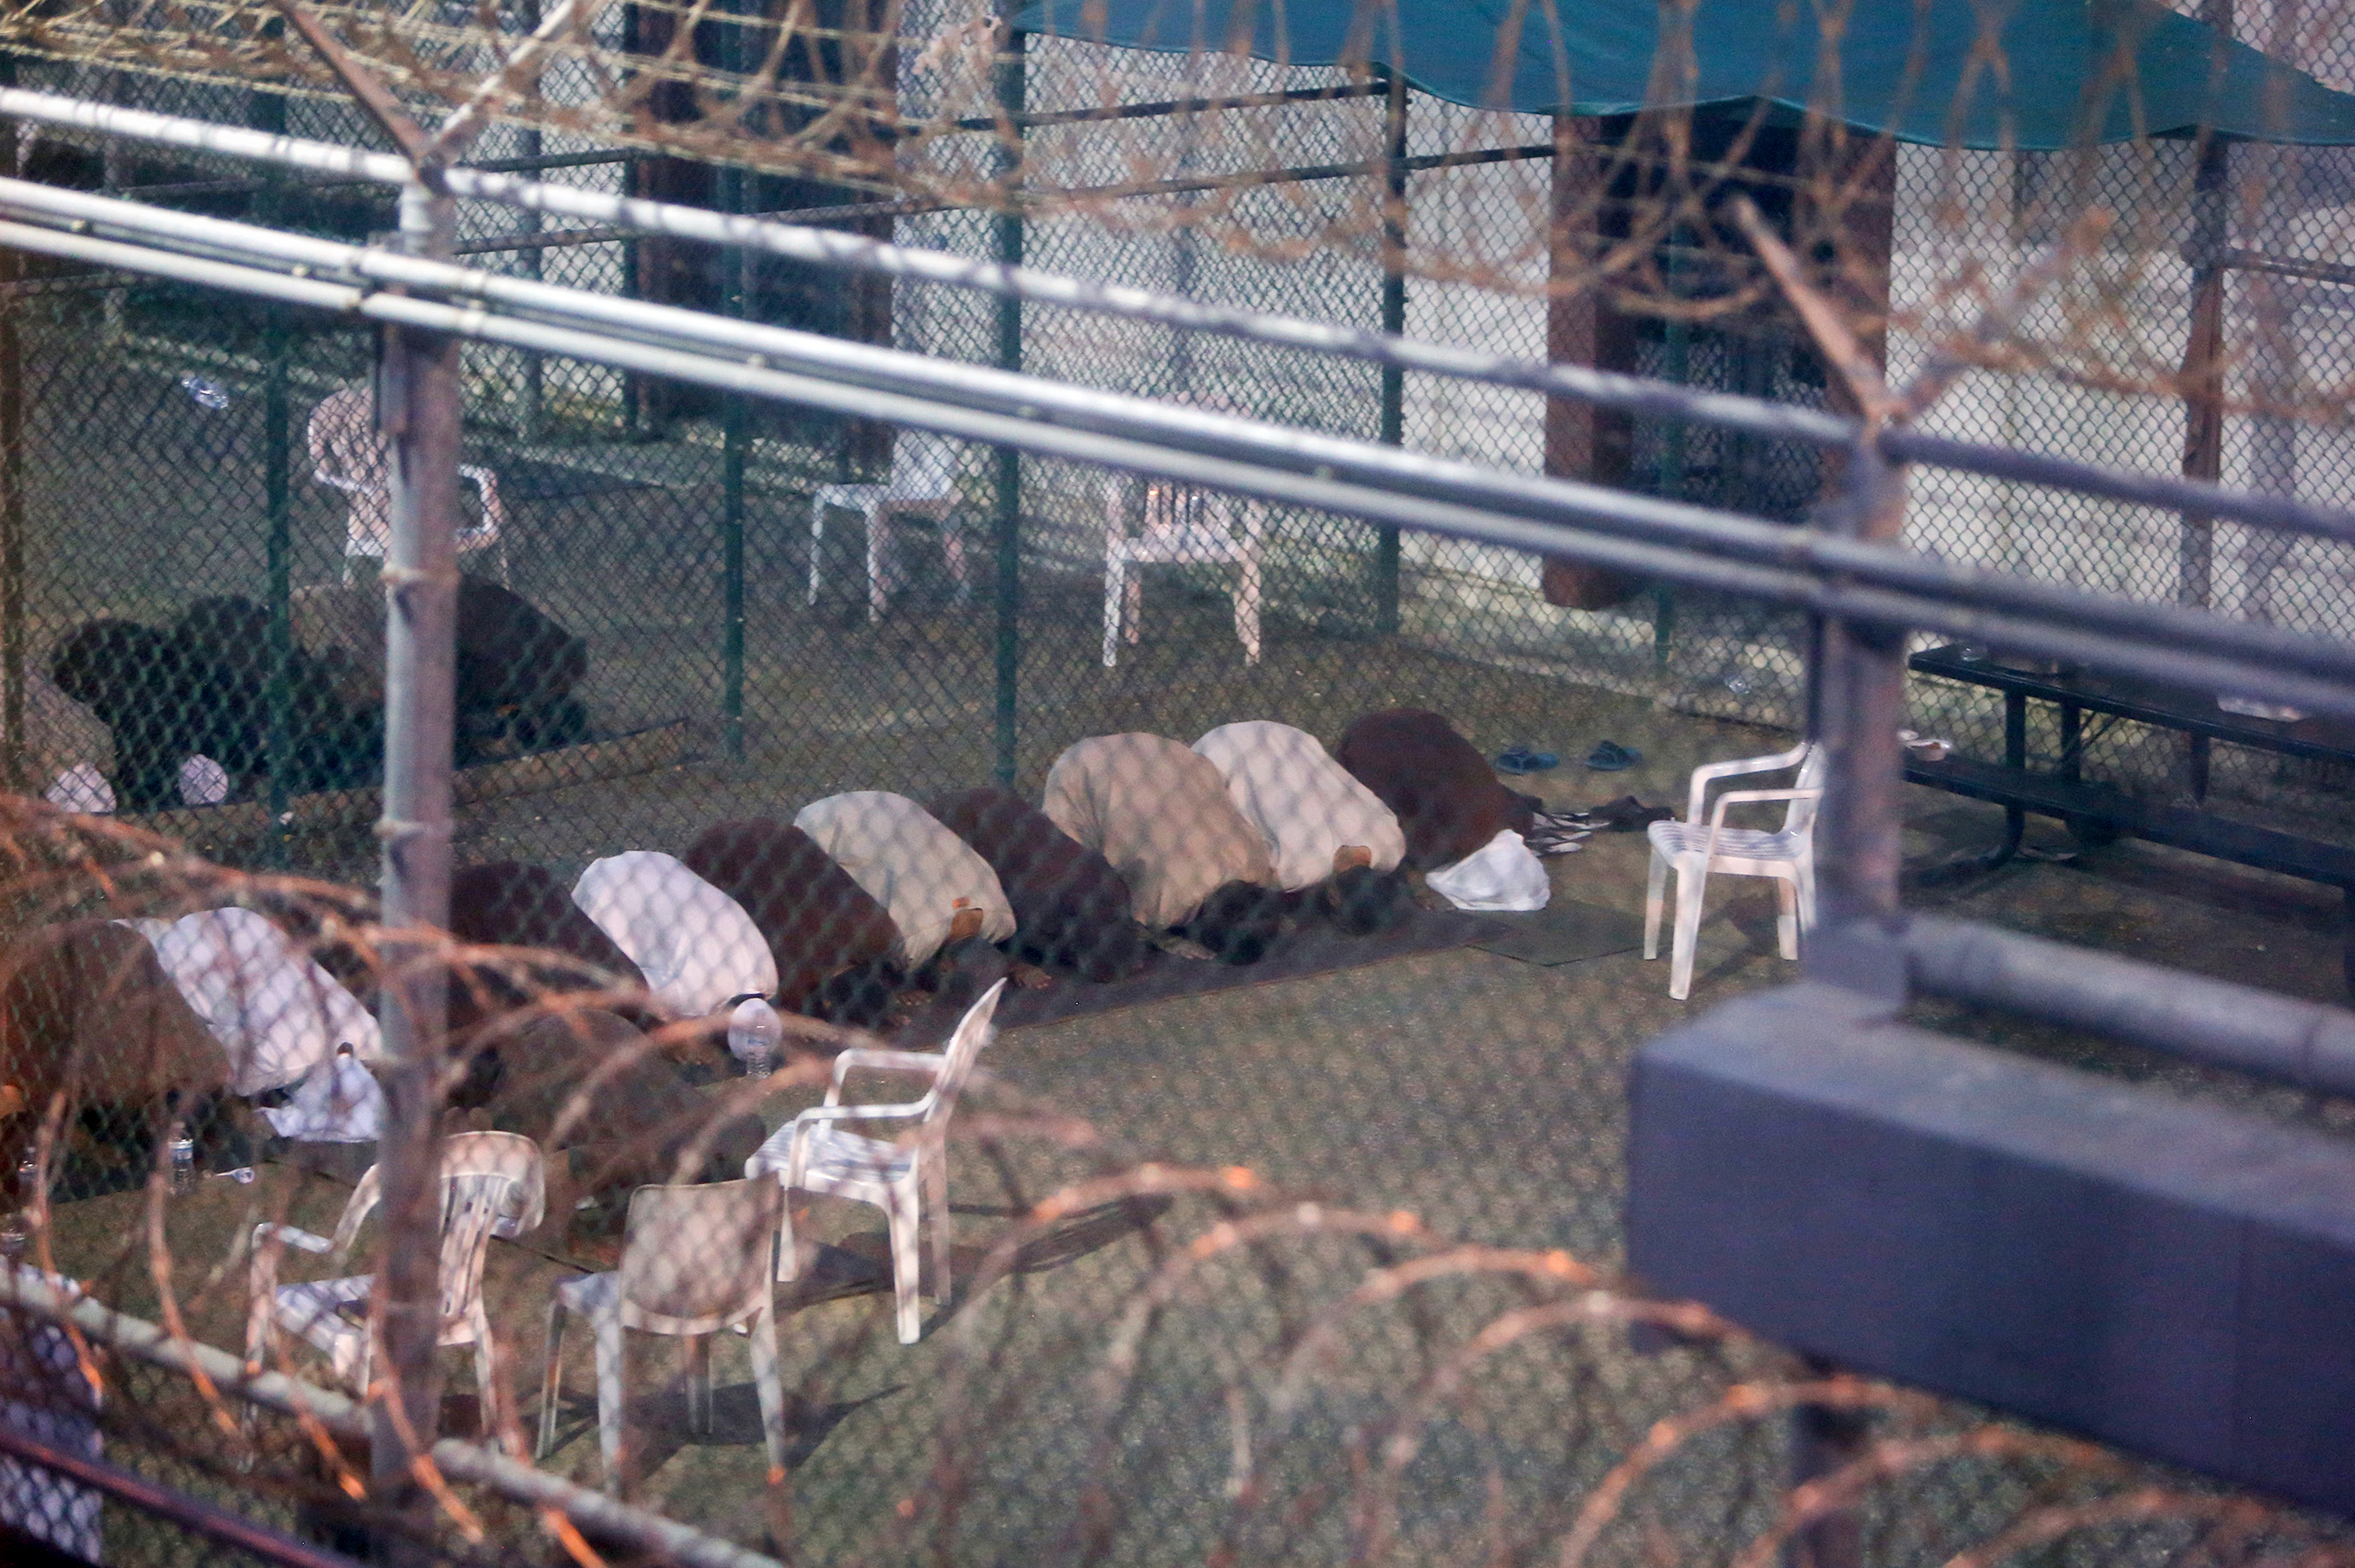 New Gitmo Plan Would Relocate Some Detainees To U.S.